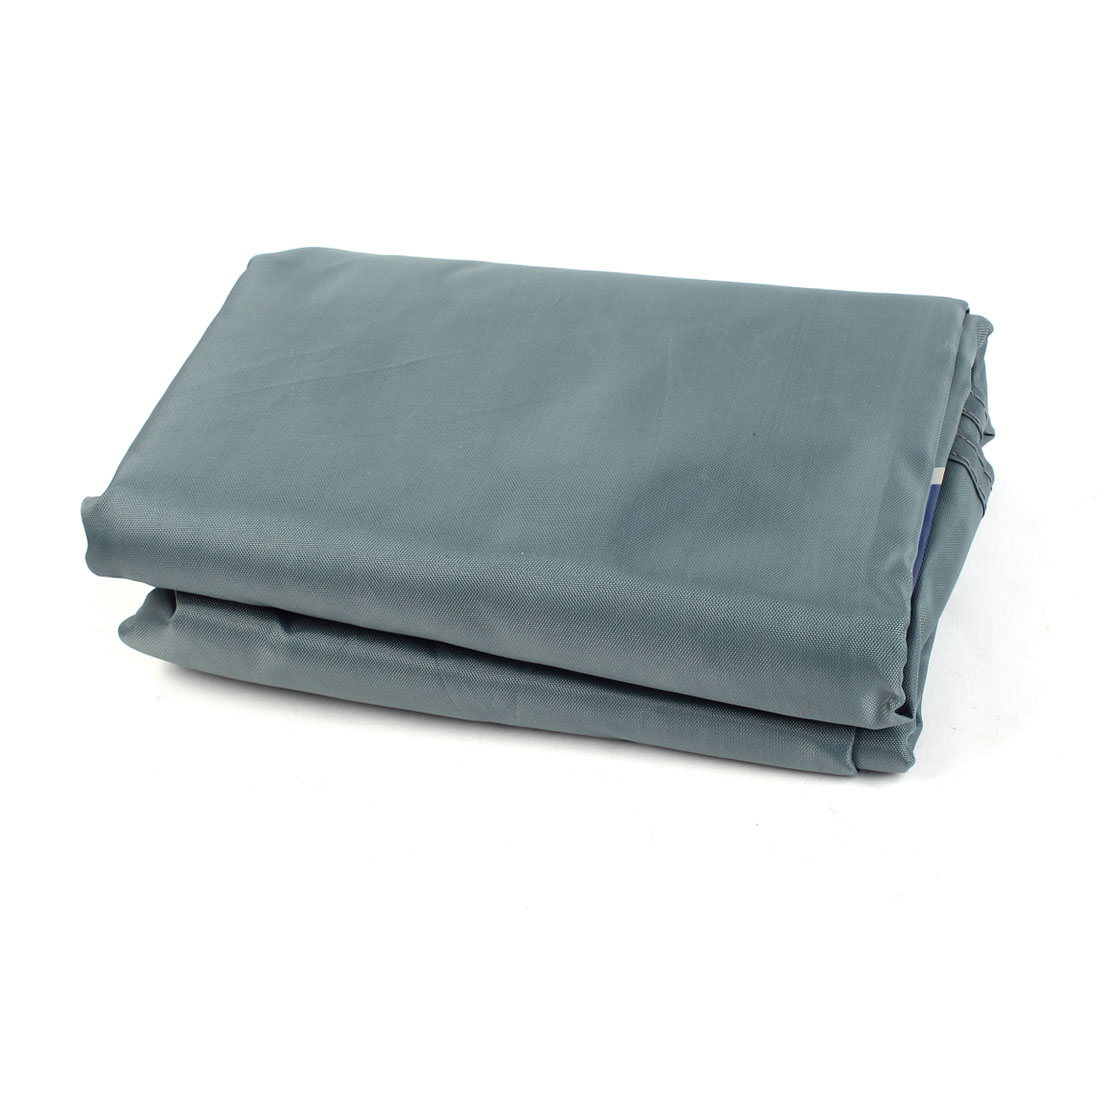 Portable Outdoor Camping Beach Picnic Rain Sun Shelter Tent Mat Cushion Dark Gray 215cm x 215cm